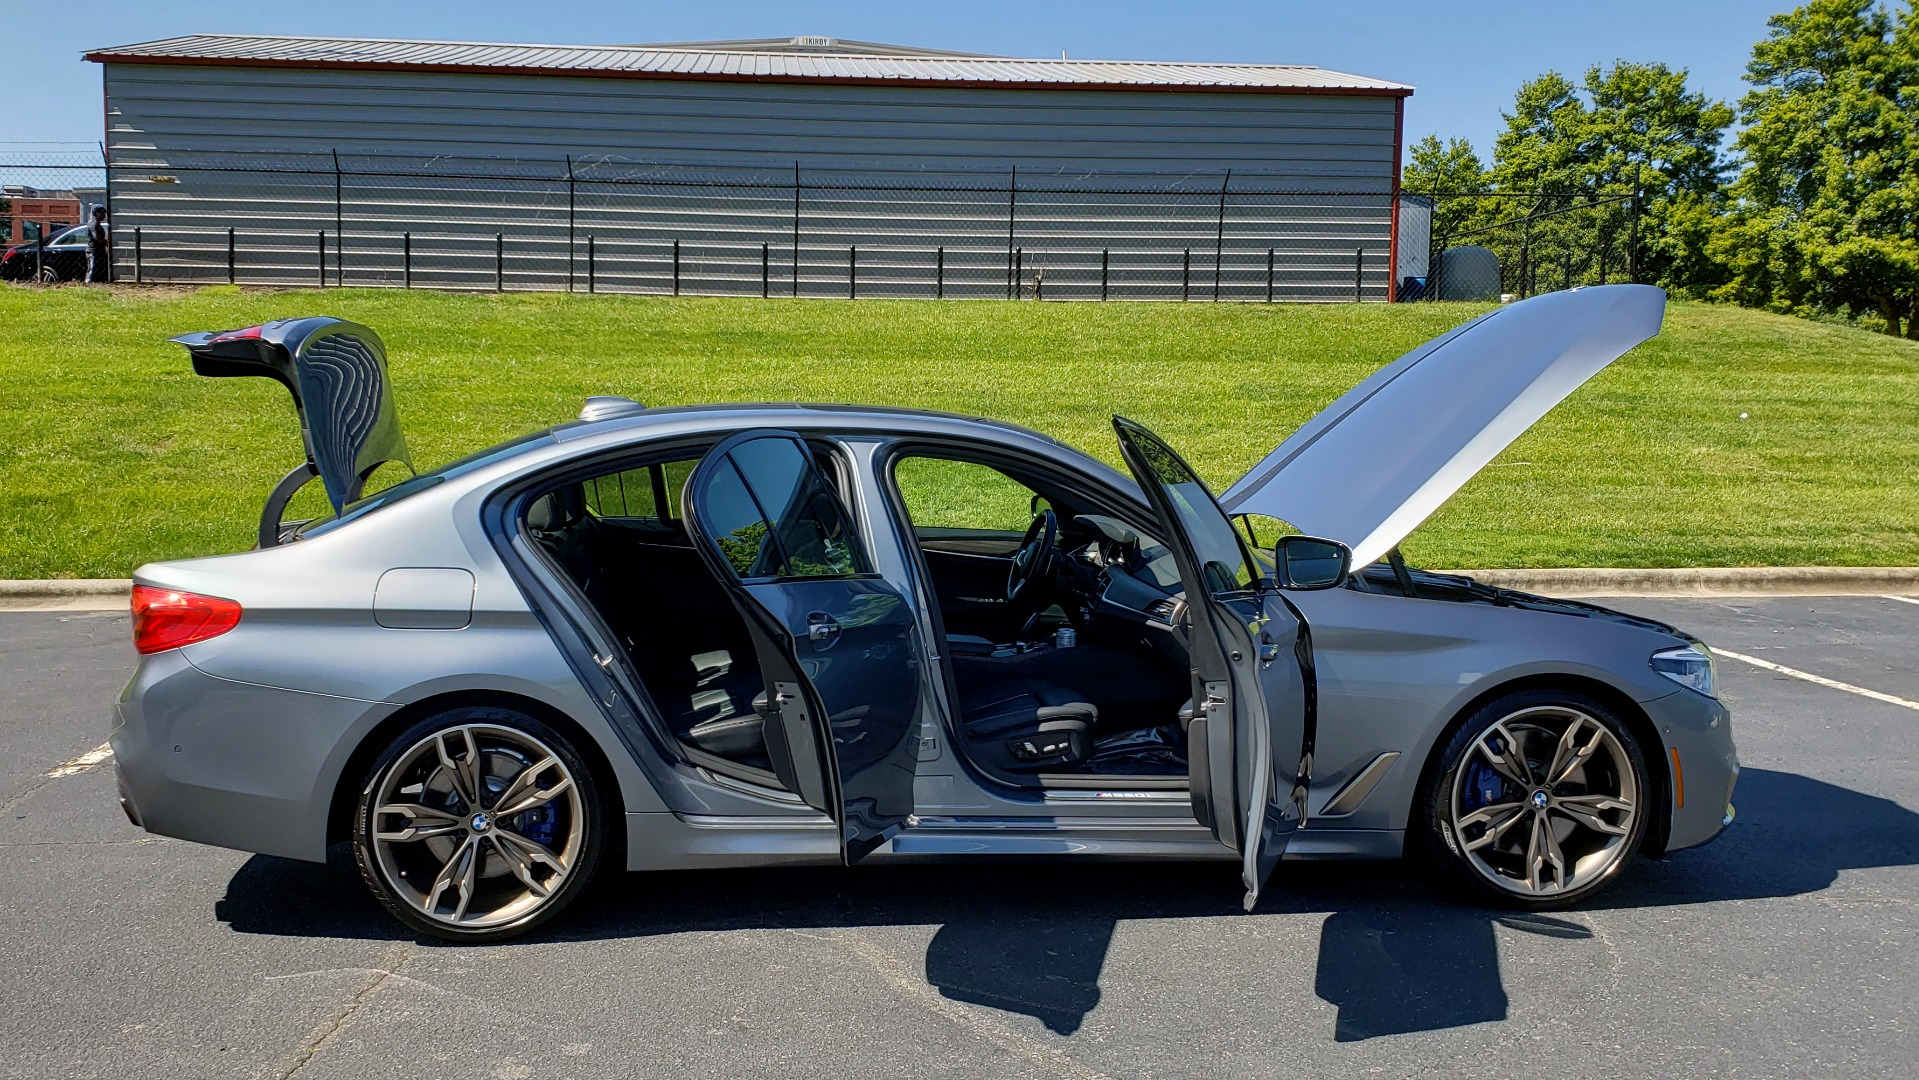 Used 2018 BMW 5 SERIES M550I XDRIVE / EXEC PKG / LUX / DRVR ASST / CLD WTHR / ACTIVE DR for sale Sold at Formula Imports in Charlotte NC 28227 11